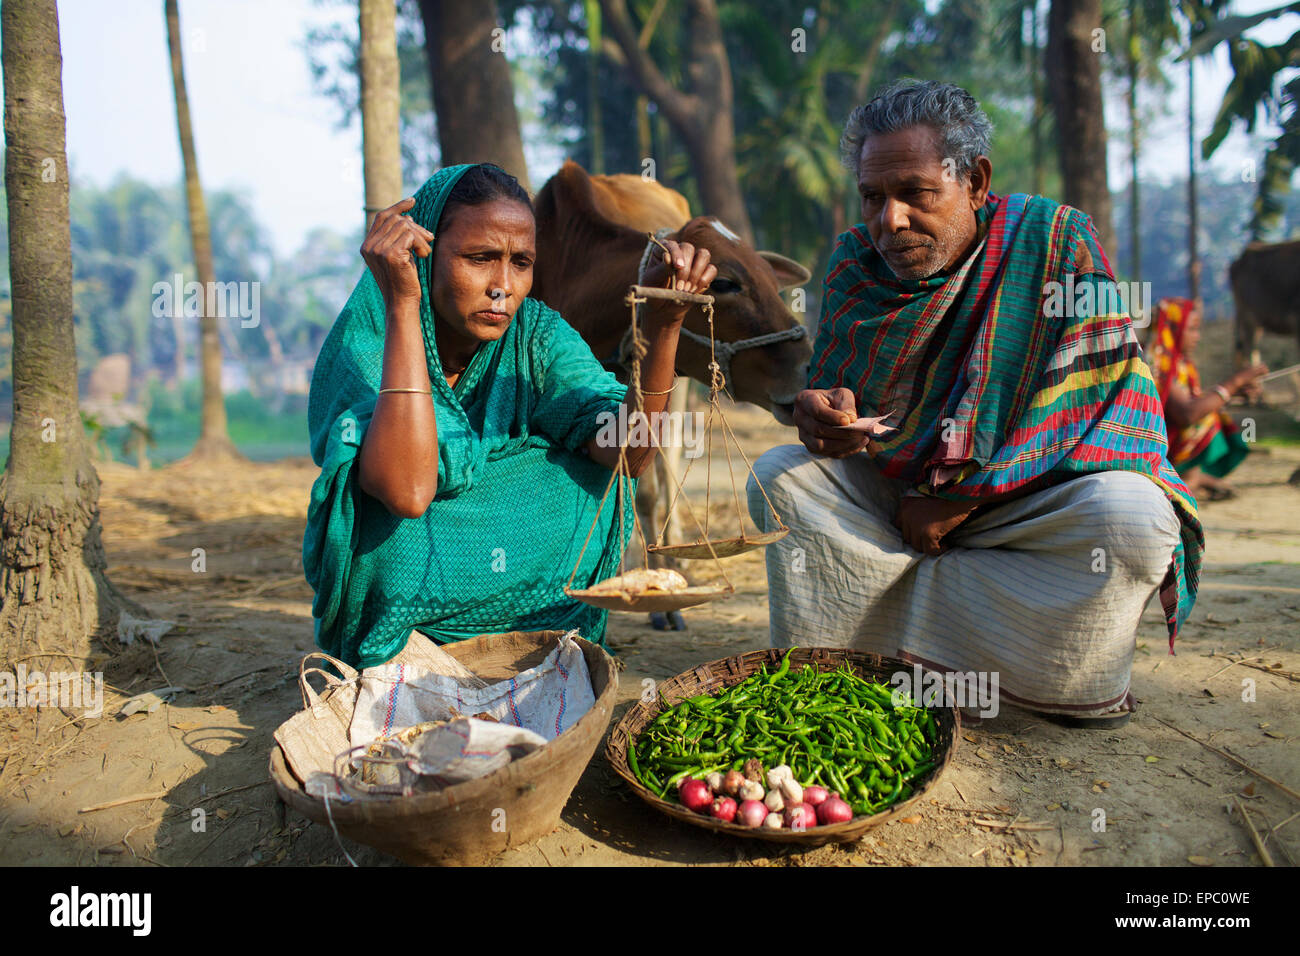 Couple selling vegetables kishoreganj bangladesh